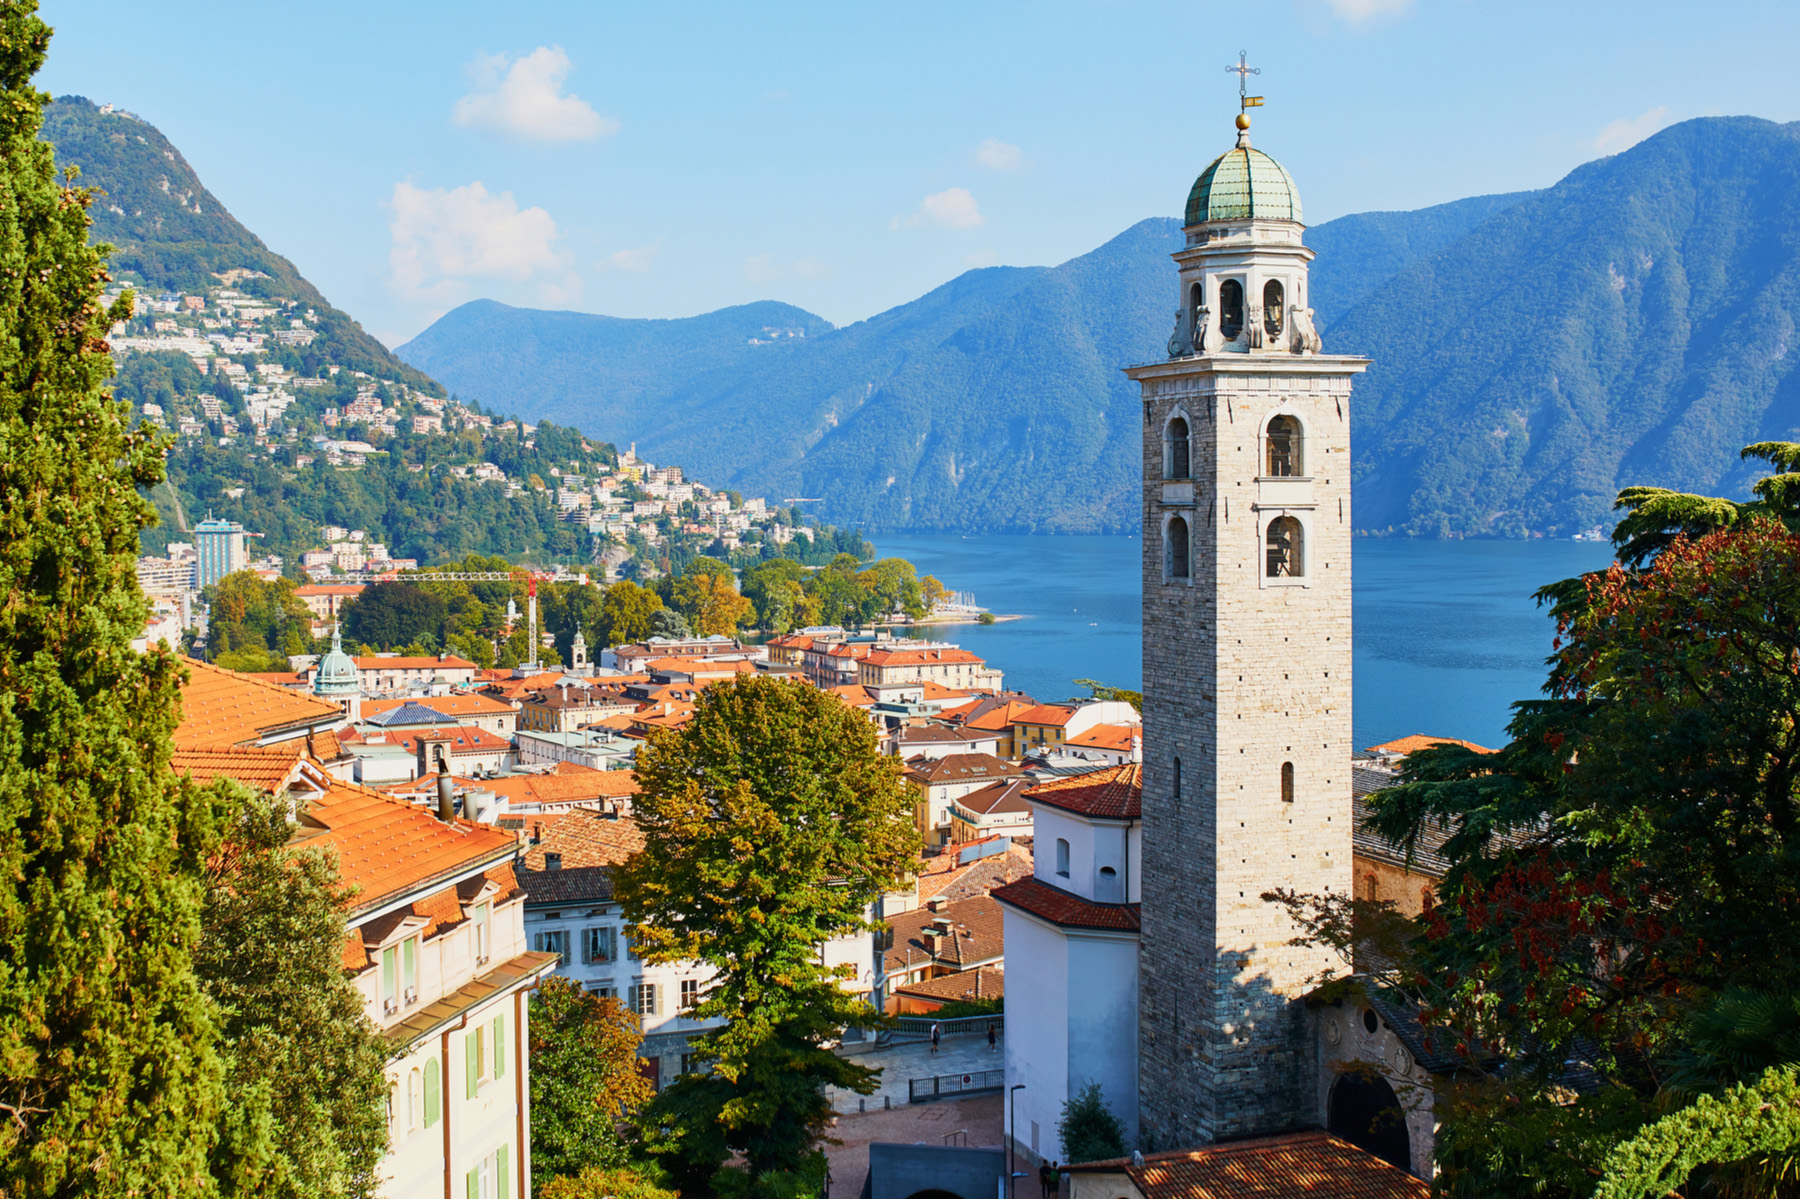 The old town of Lugano